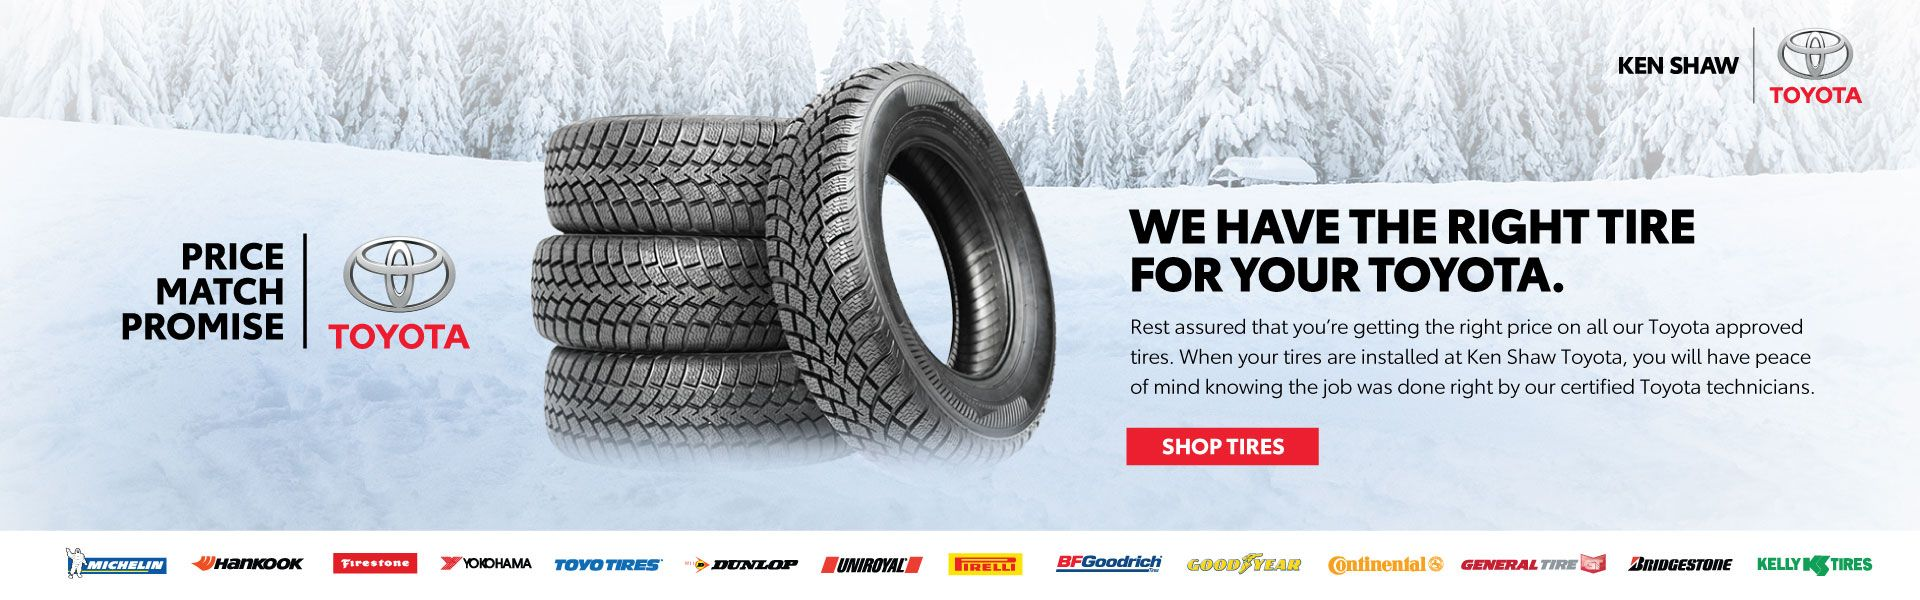 Toyota Winter Tires Price Match Promise at Ken Shaw Toyota in Toronto Ontario